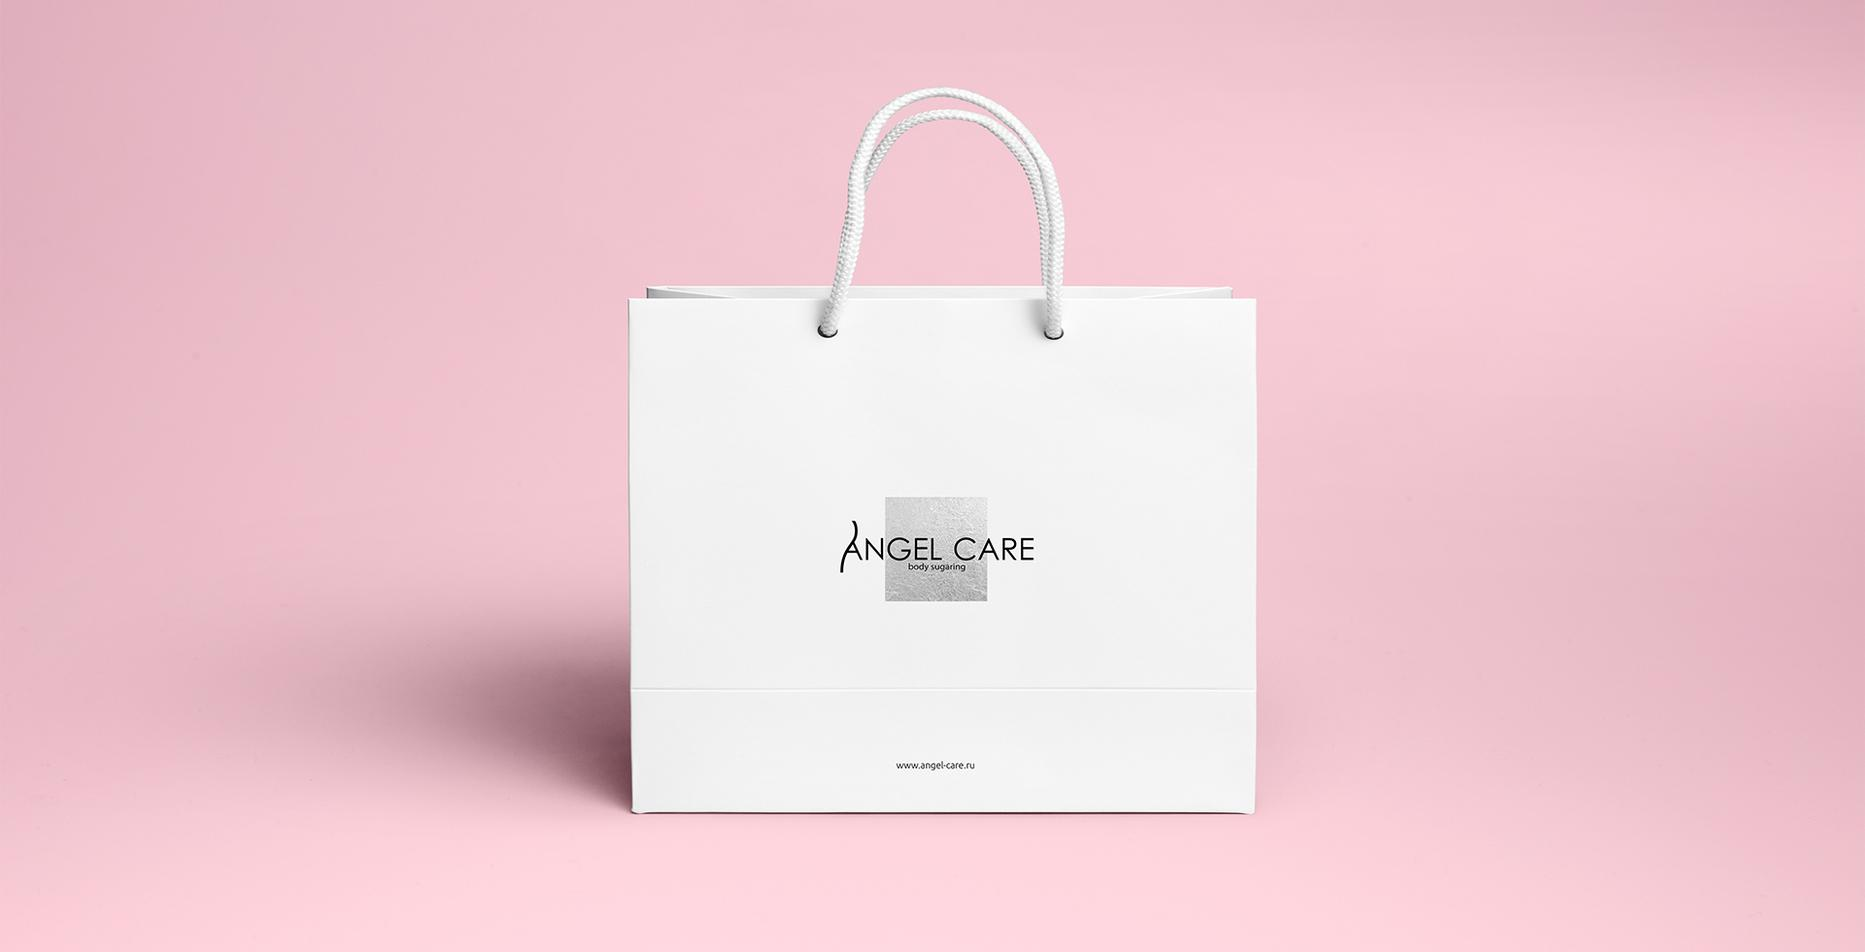 Case: logo, corporate identity, promotional products for Angel Care — Rubarb - Image - 9